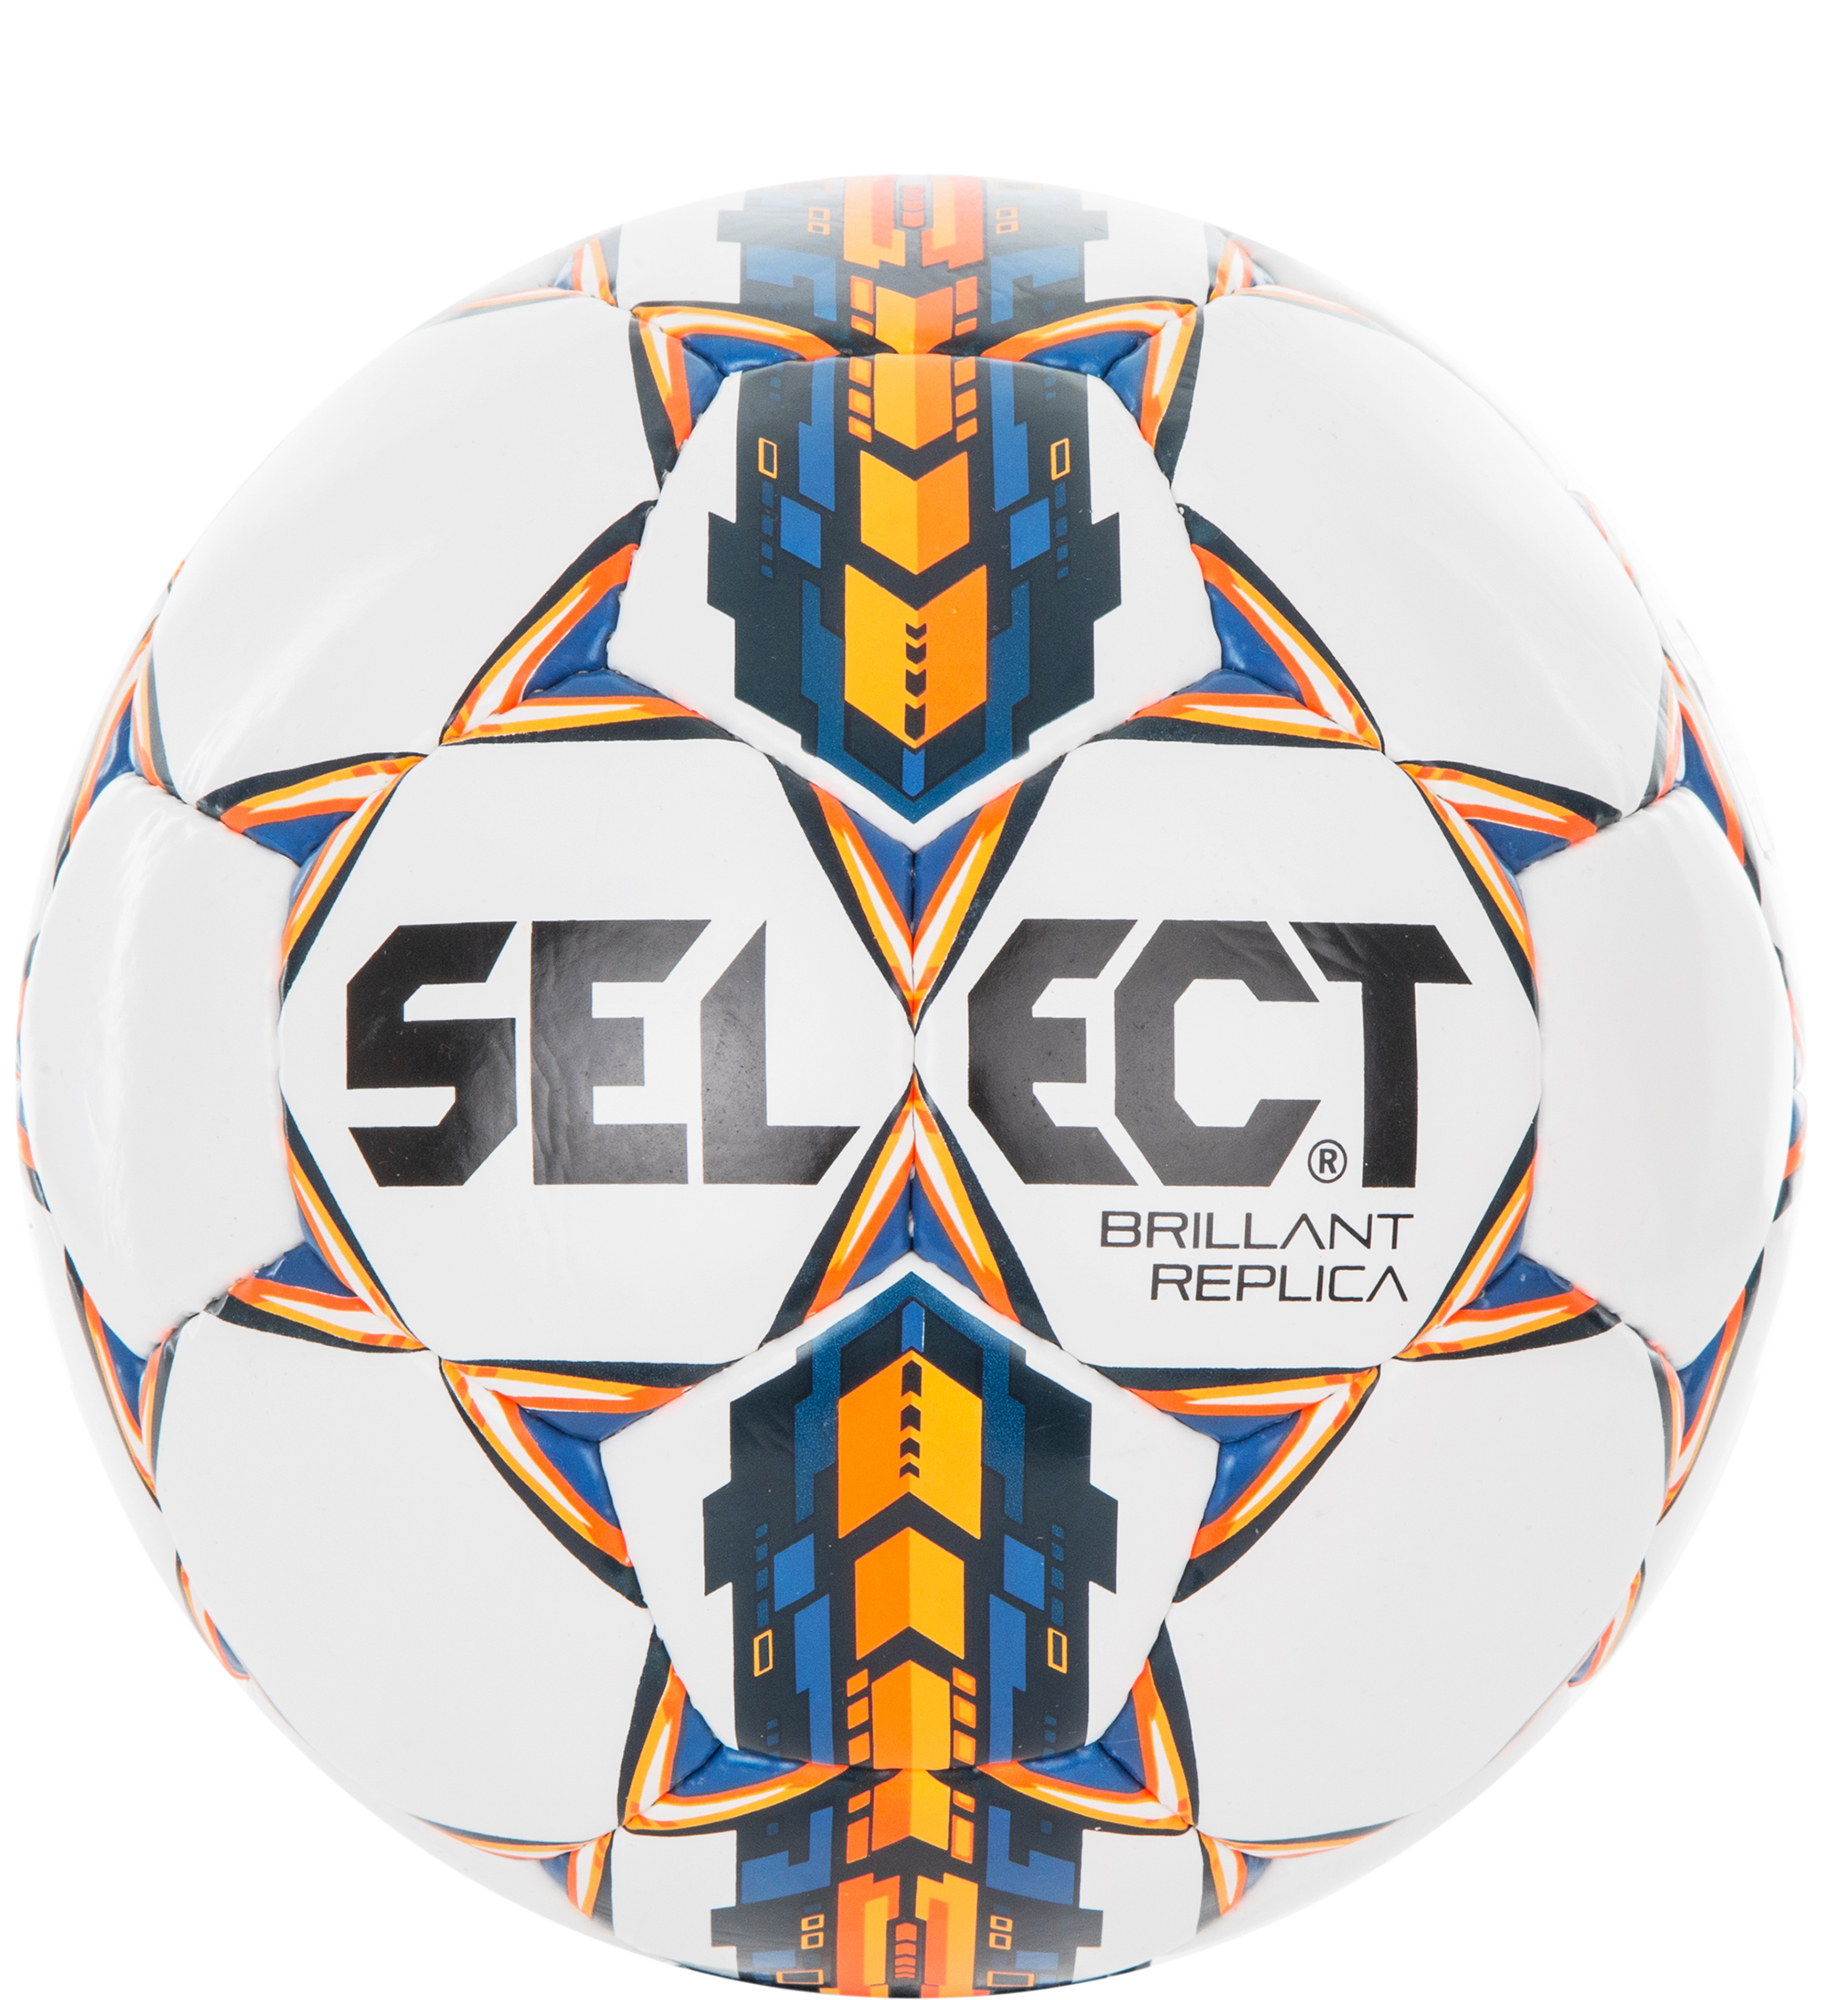 Select Мяч футбольный Select Brillant Replica, размер 5 цена